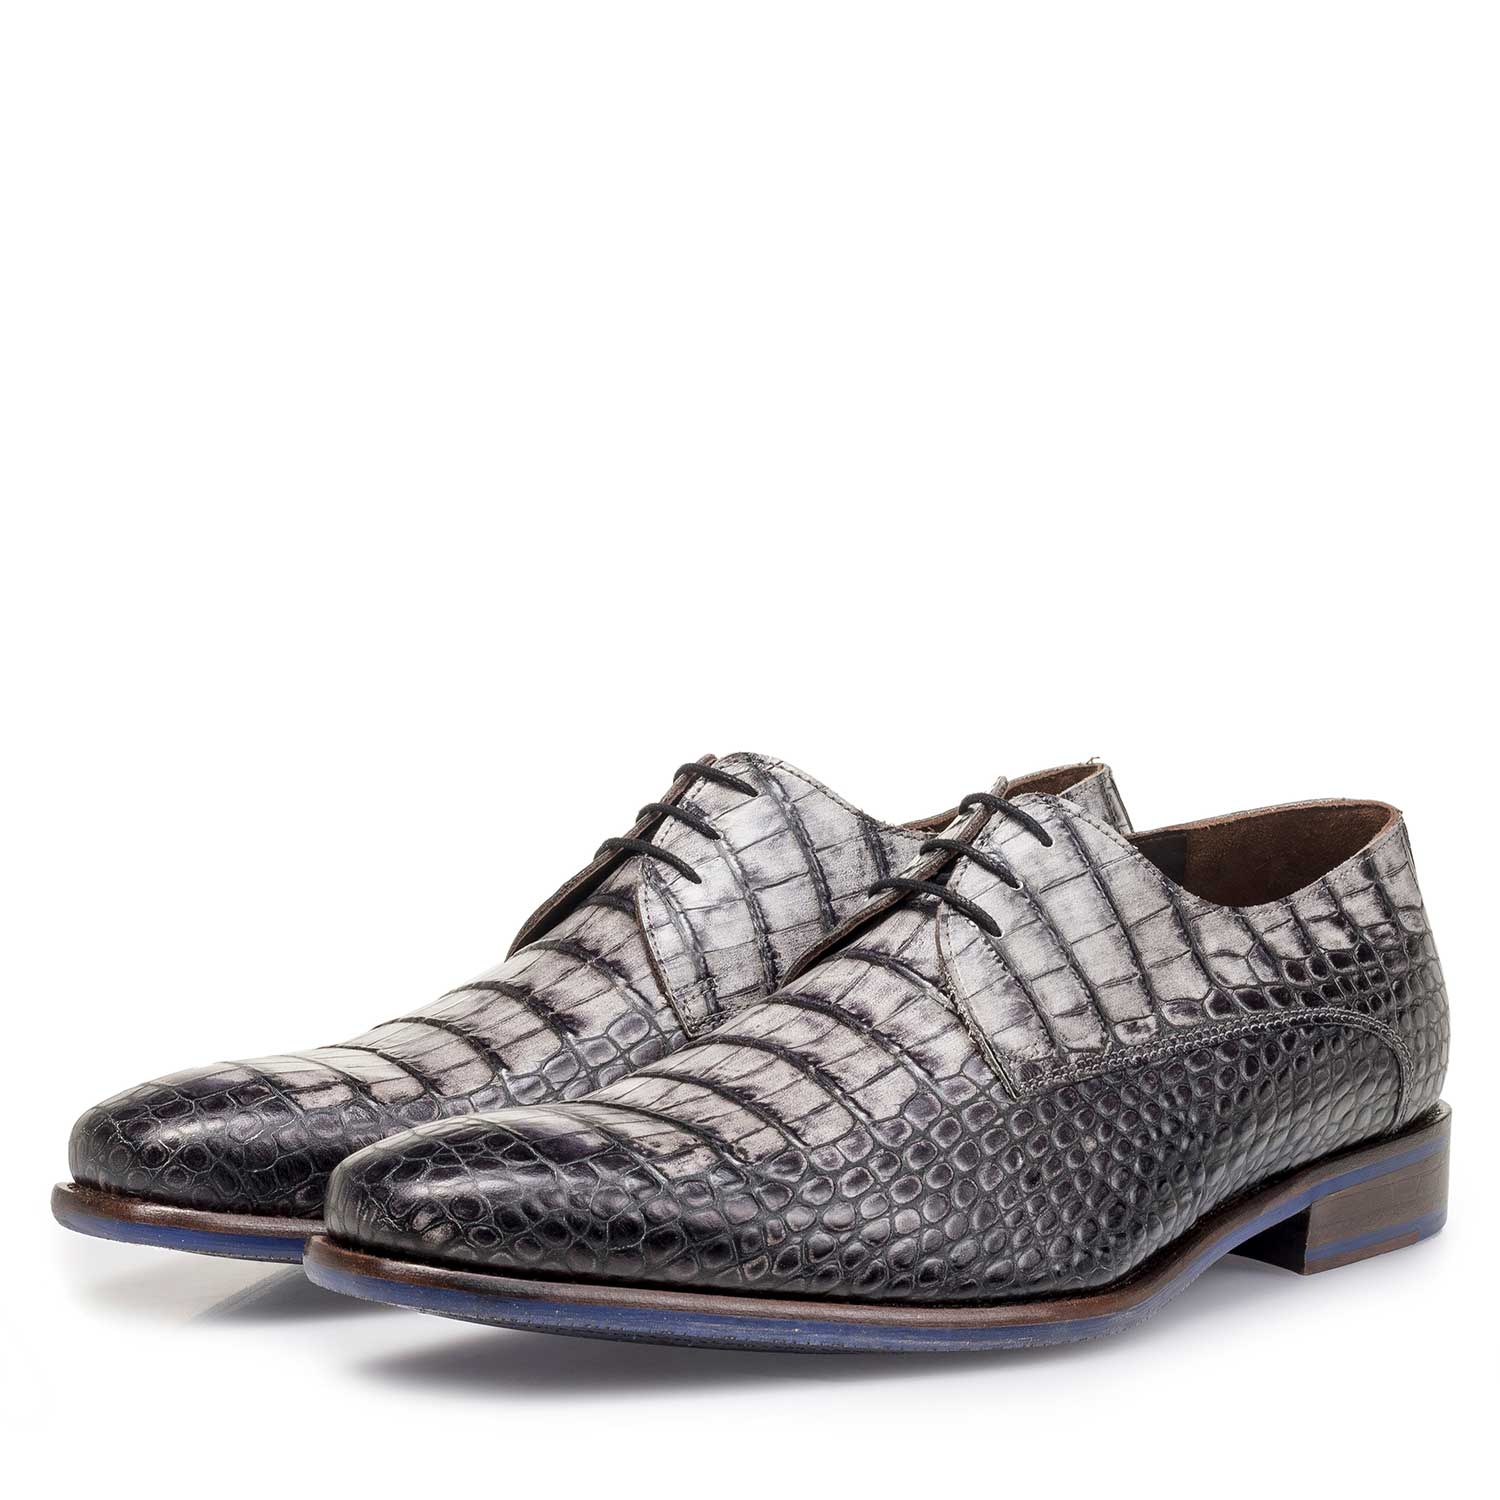 14204/14 - Grey croco print calf leather lace shoe